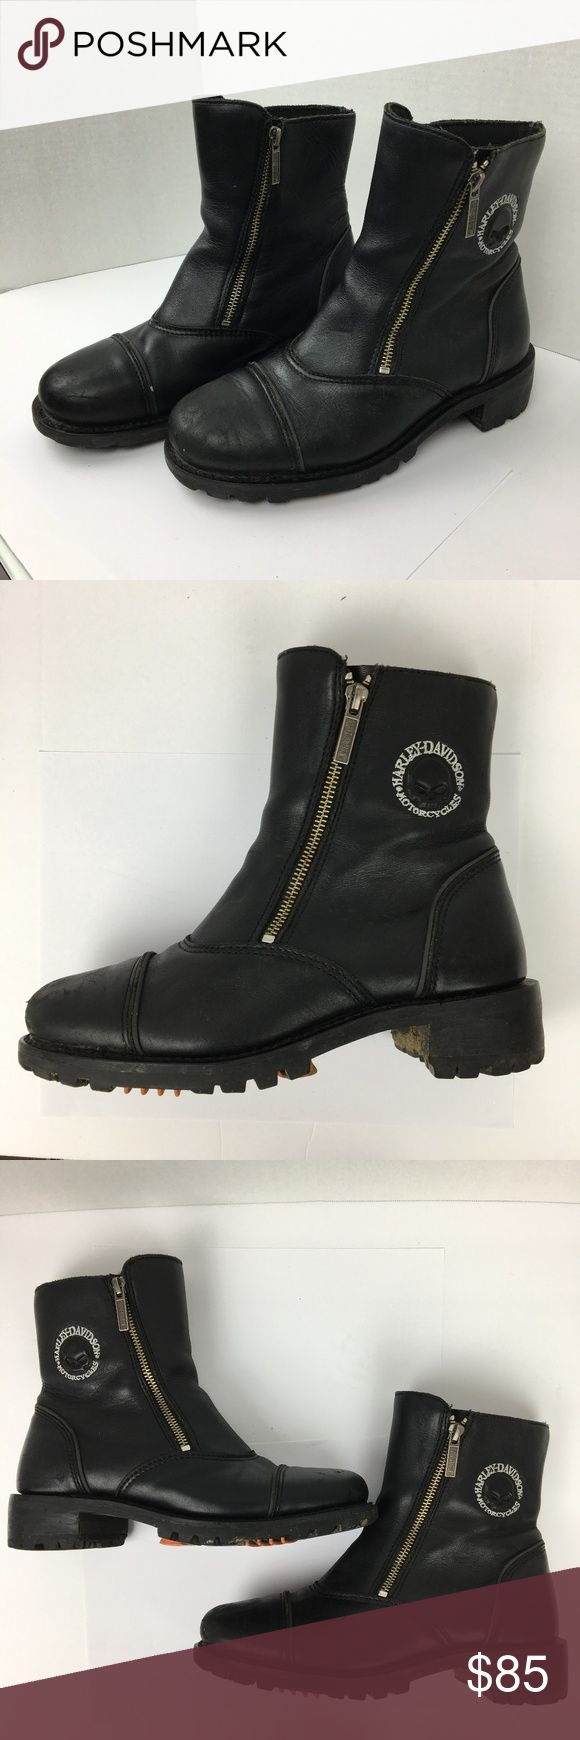 Harley Davidson womens size 8 ankle boots zipper motorcycle  moto Harley-Davidson womens size 8 ankle boots zipper zippered Skull and crossbones emblem embossed  very good condition black leather Harley-Davidson Shoes Combat & Moto Boots